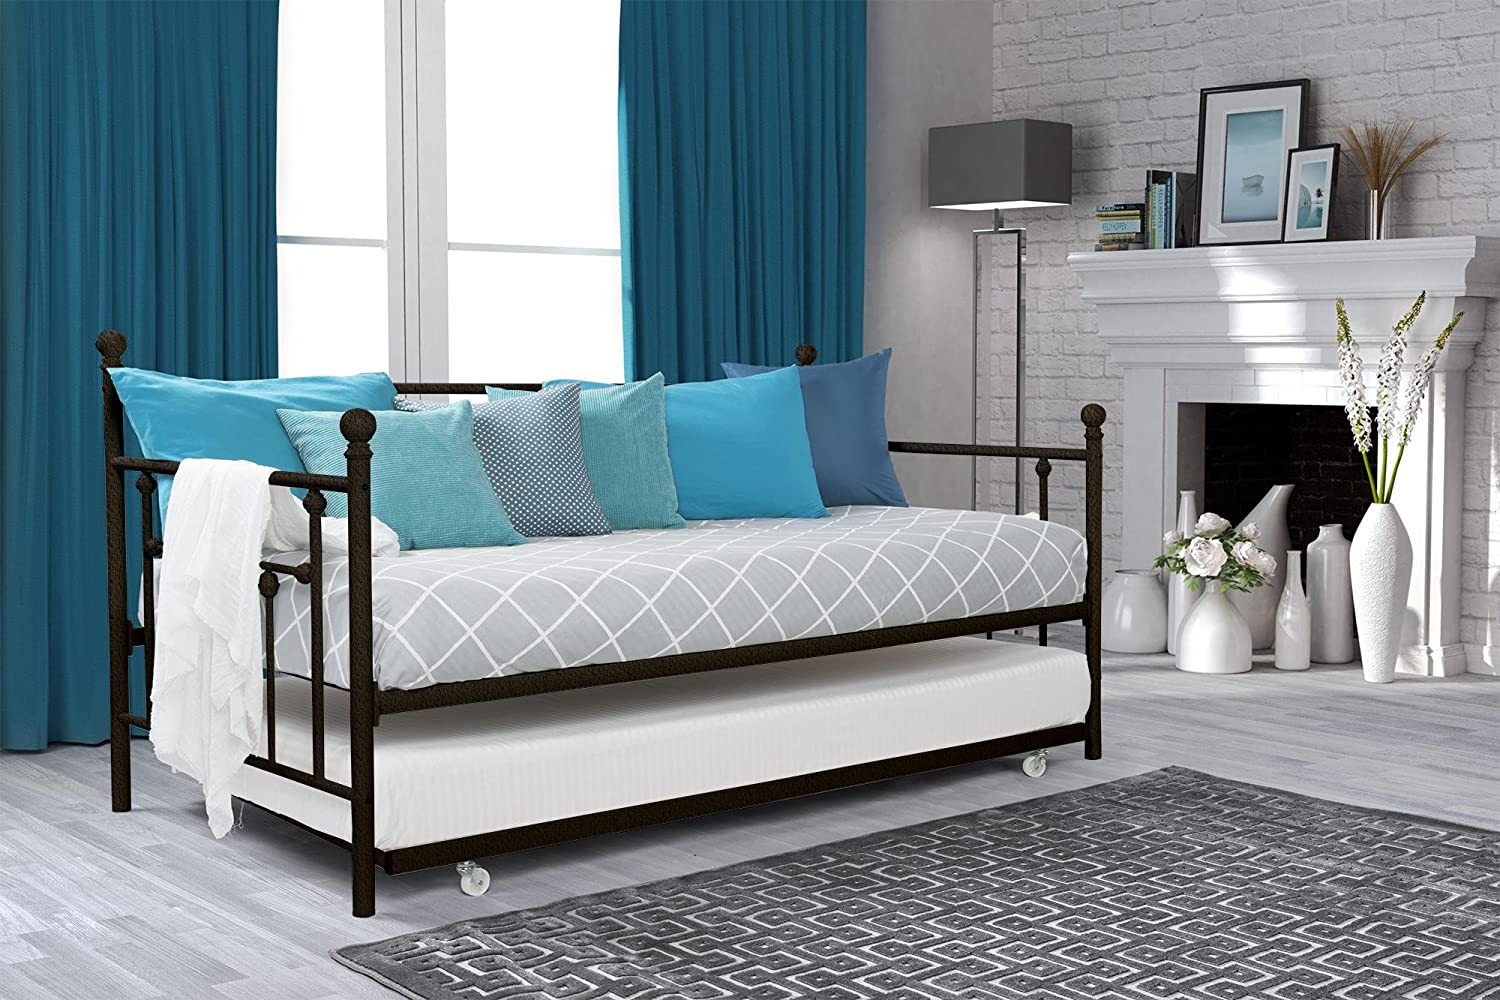 Amazon.com: DHP Manila Metal Framed Daybed with Trundle, Twin - Bronze:  Kitchen & Dining - Amazon.com: DHP Manila Metal Framed Daybed With Trundle, Twin